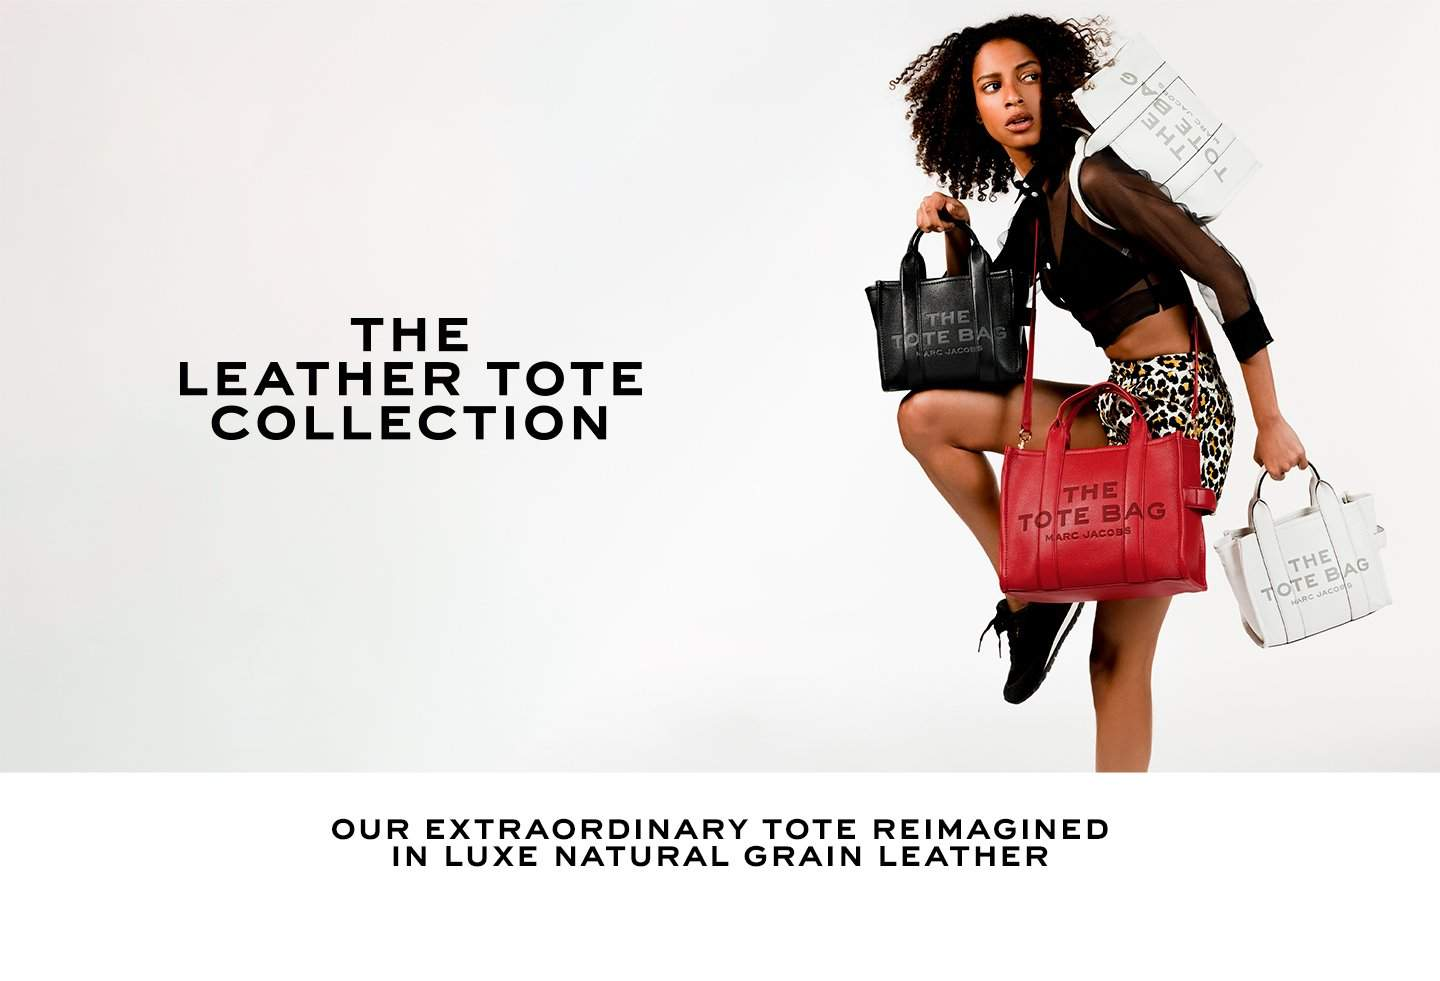 The Leather Tote Collection. Our extraordinary tote reimagined in luxe natural grain leather.